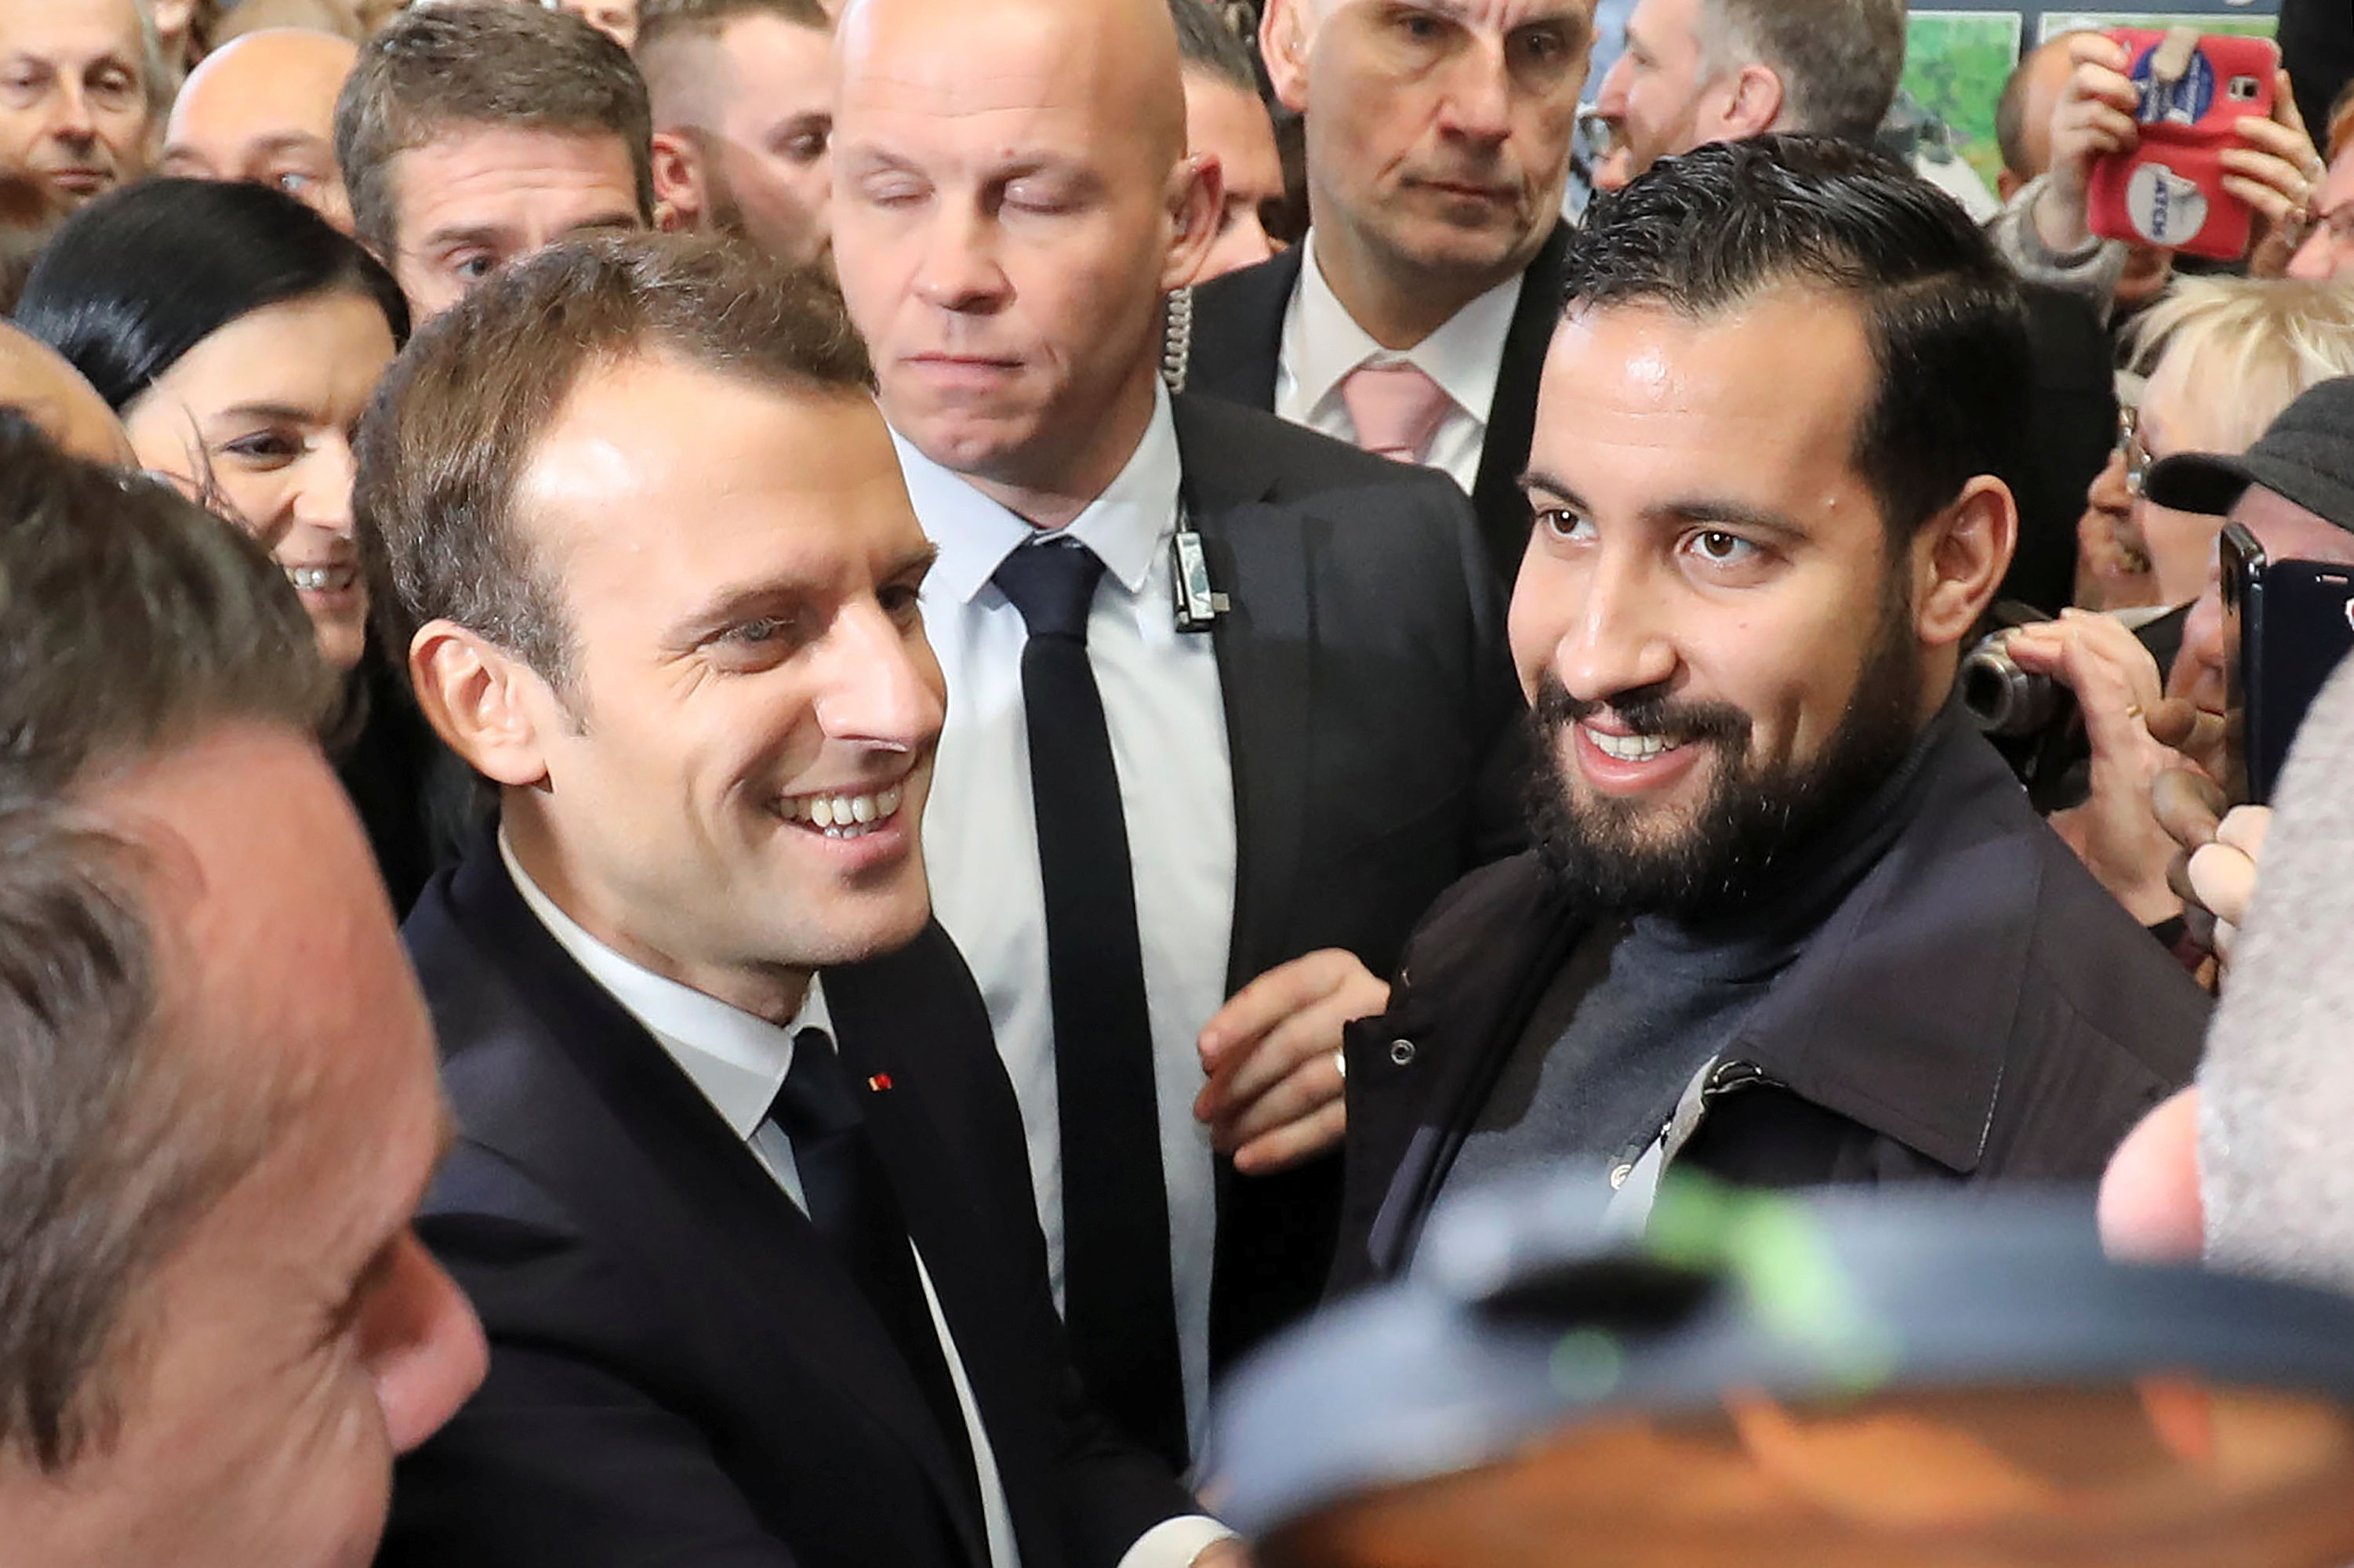 French President Emmanuel Macron, flanked by Elysee senior security officer Alexandre Benalla, visits the 55th International Agriculture Fair at the Porte de Versailles exhibition center in Paris